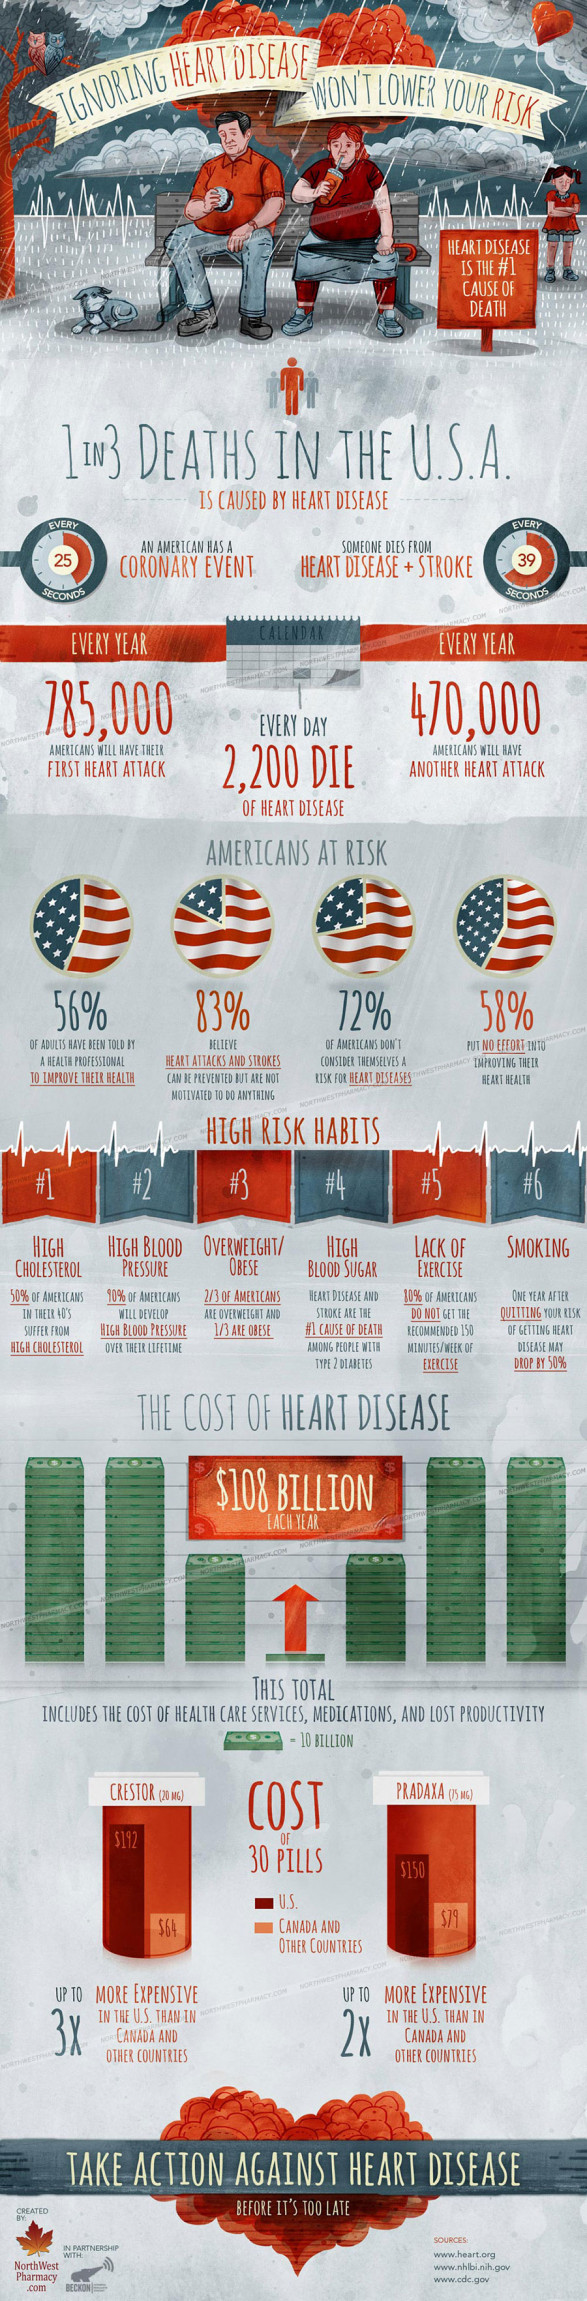 Ignoring Heart Disease Won